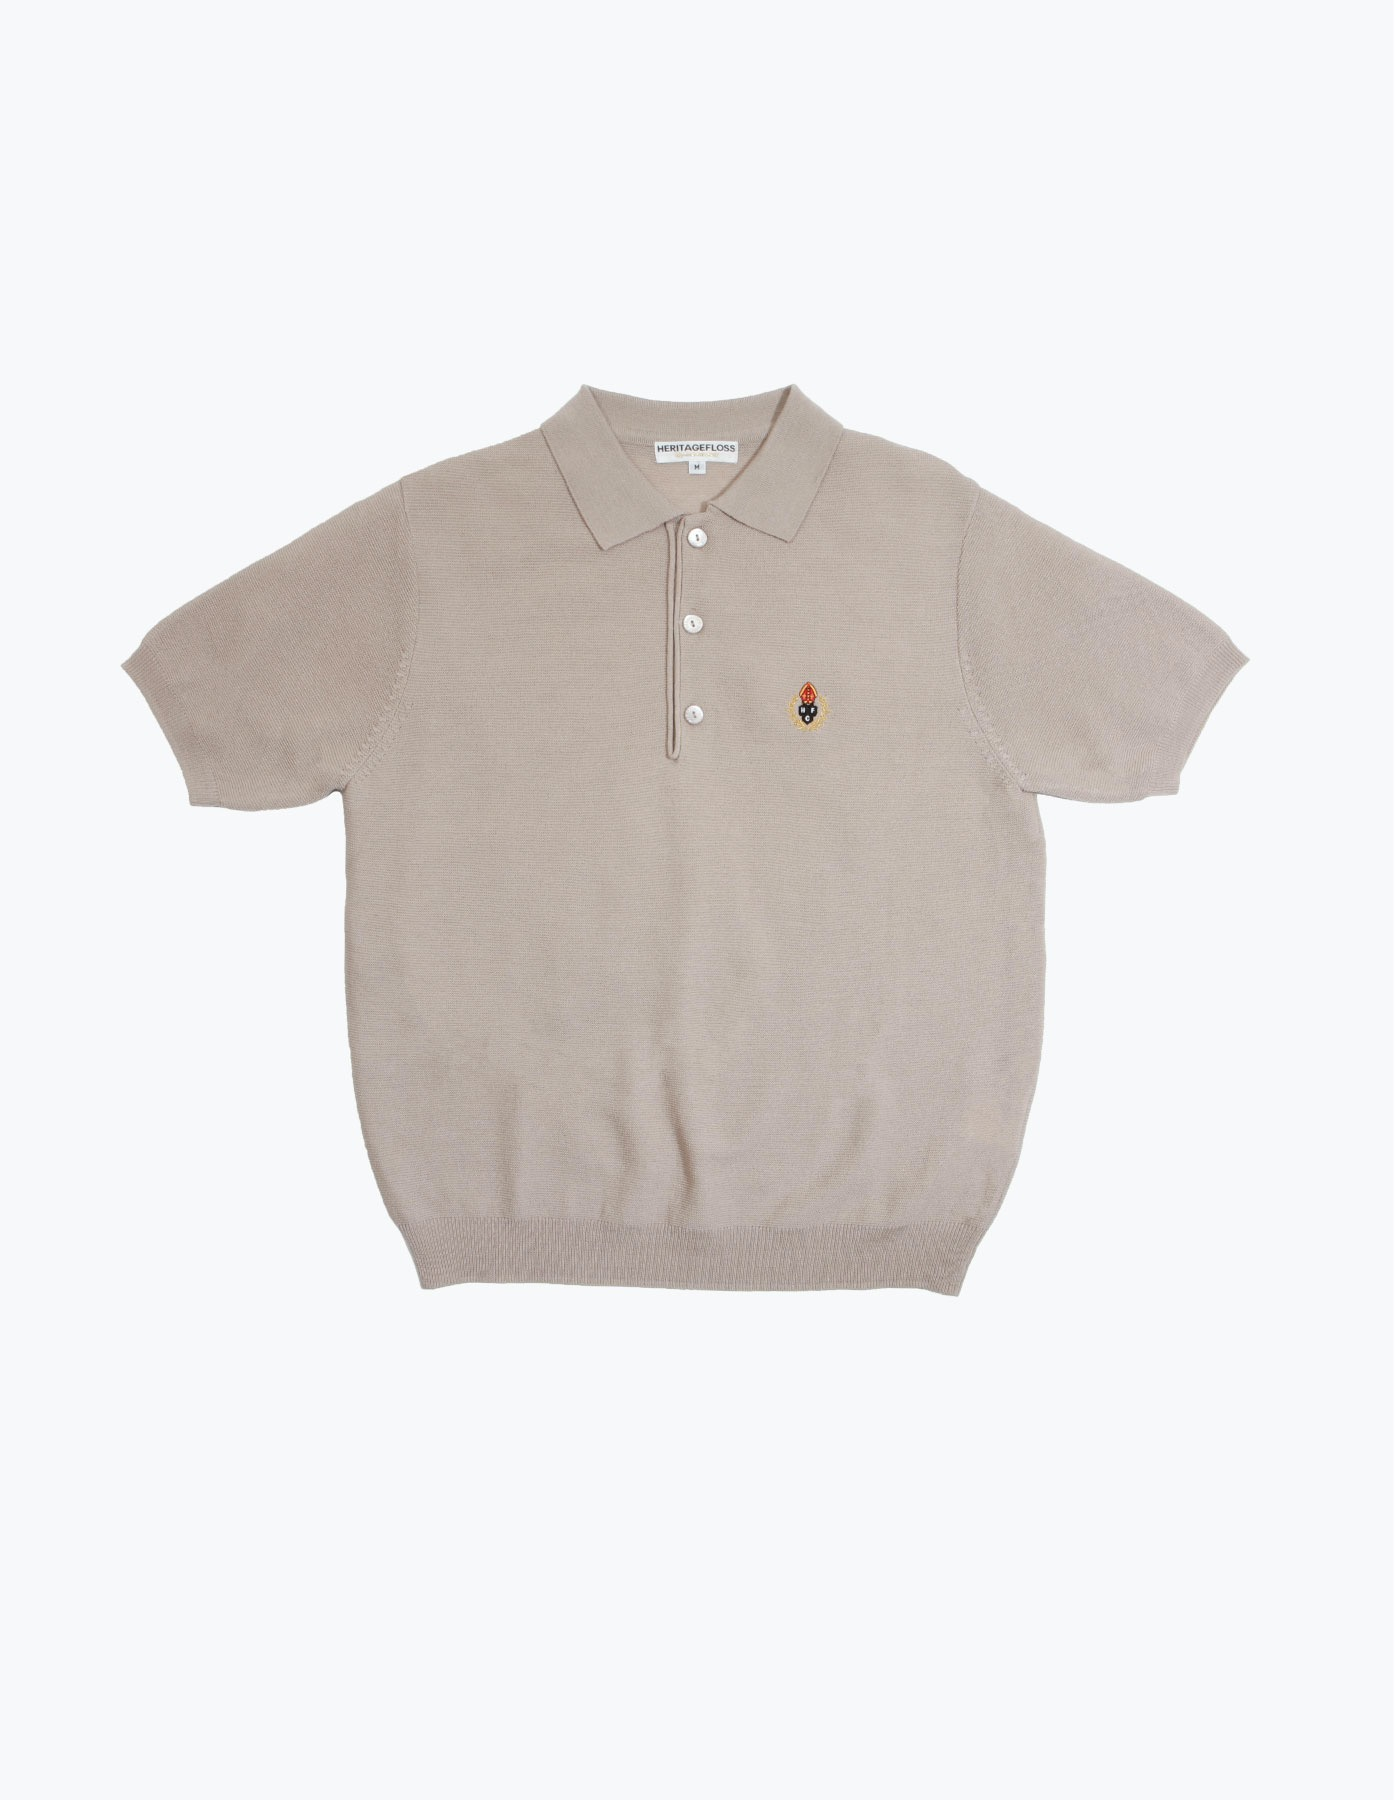 HFC CREST POLO SHIRT / LIGHT GREY